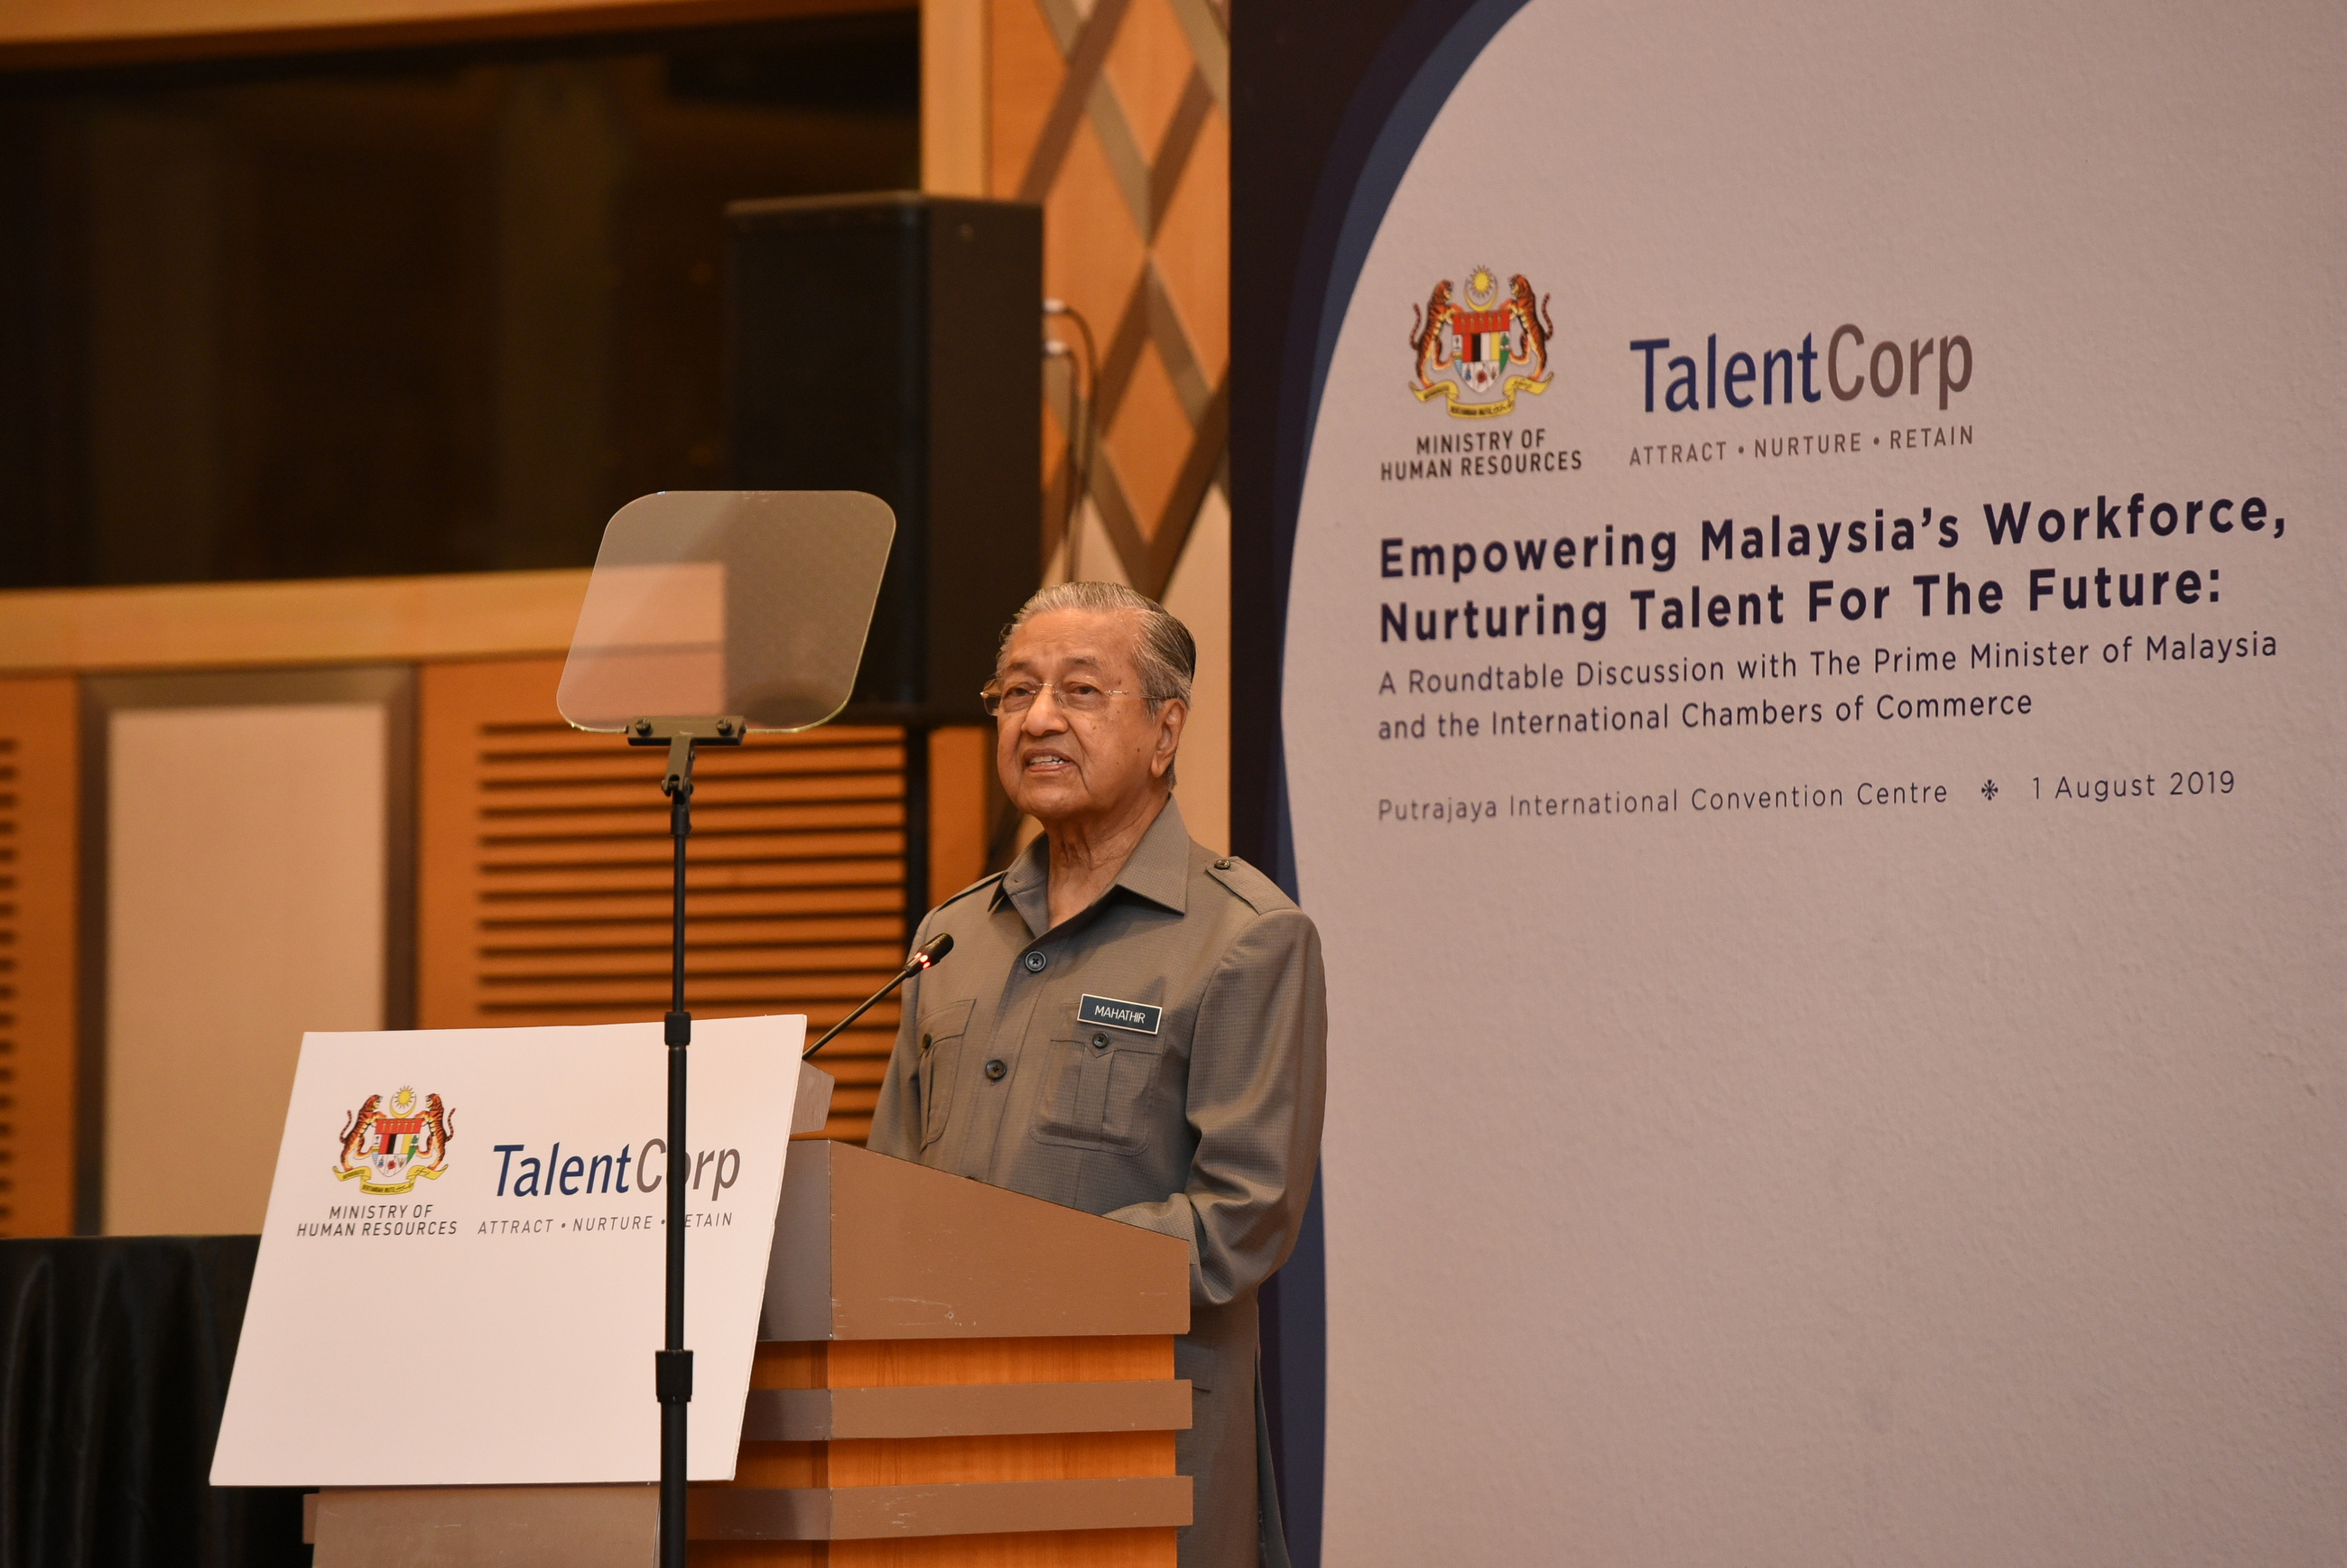 20190801_TalentCorp Roundtable with Prime Minister of Malaysia_22